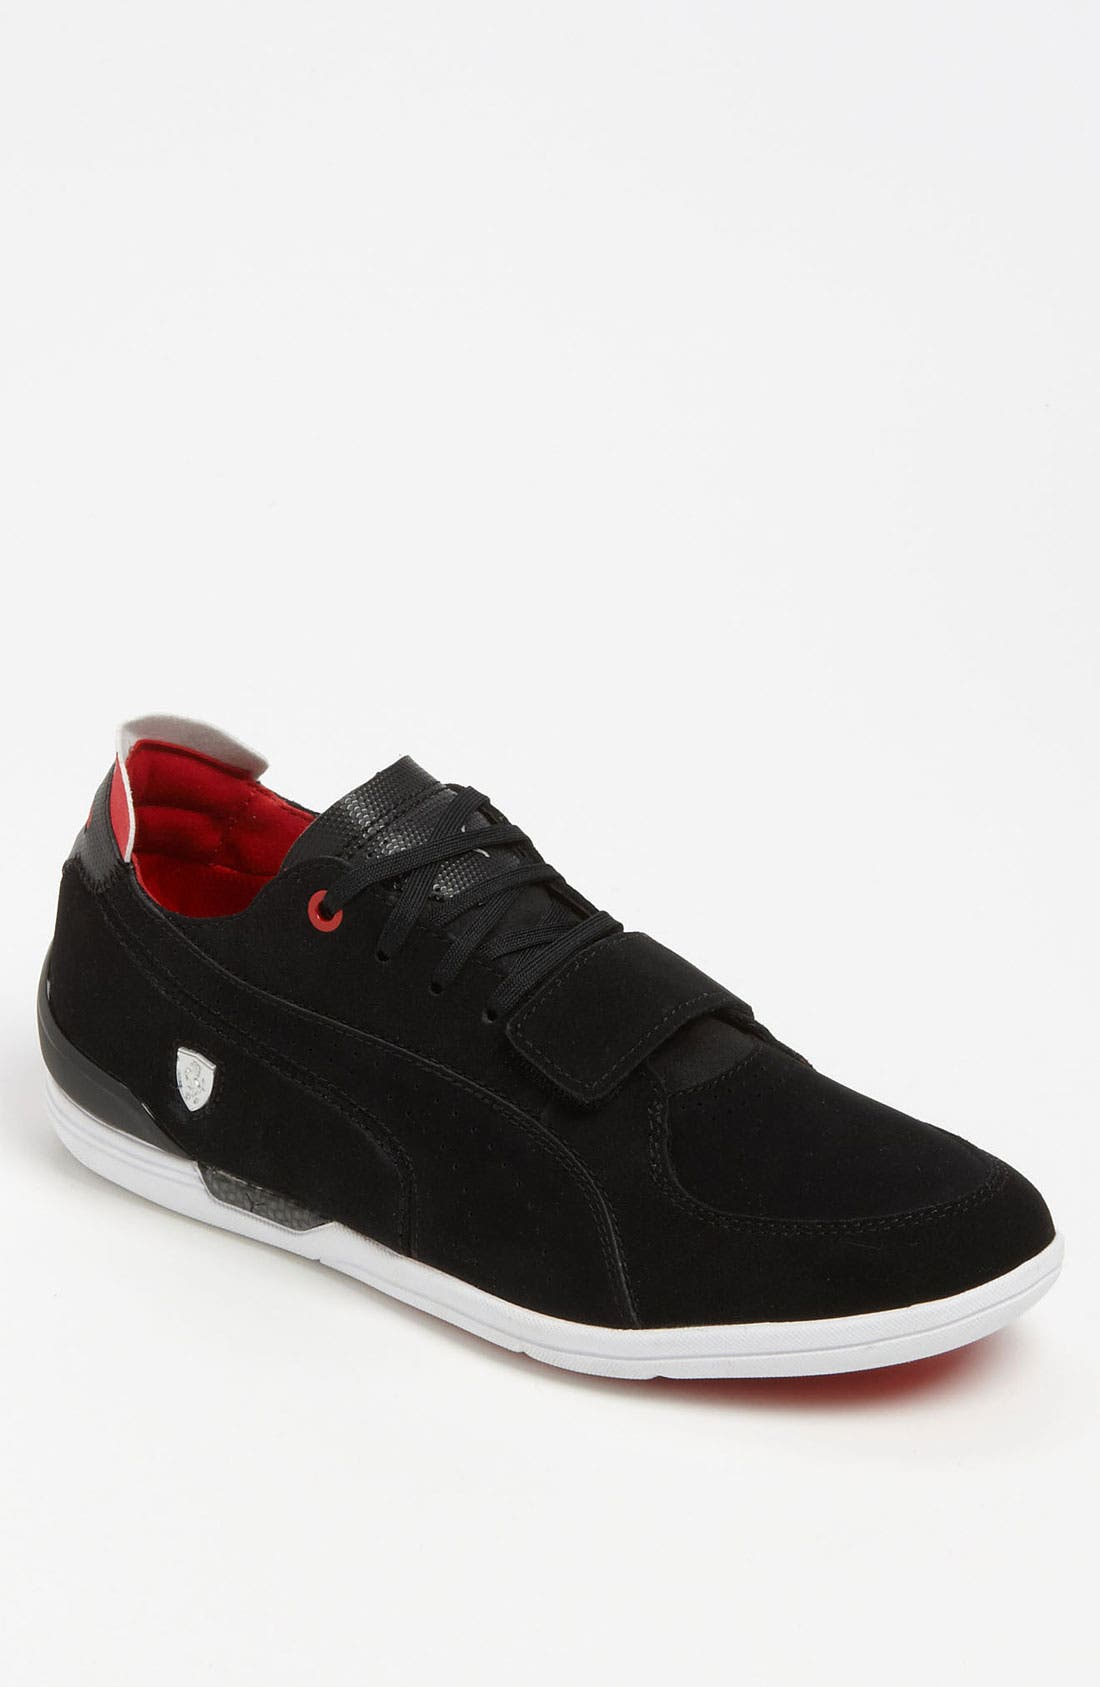 Alternate Image 1 Selected - PUMA 'Driving Power 2 Low' Sneaker (Men)